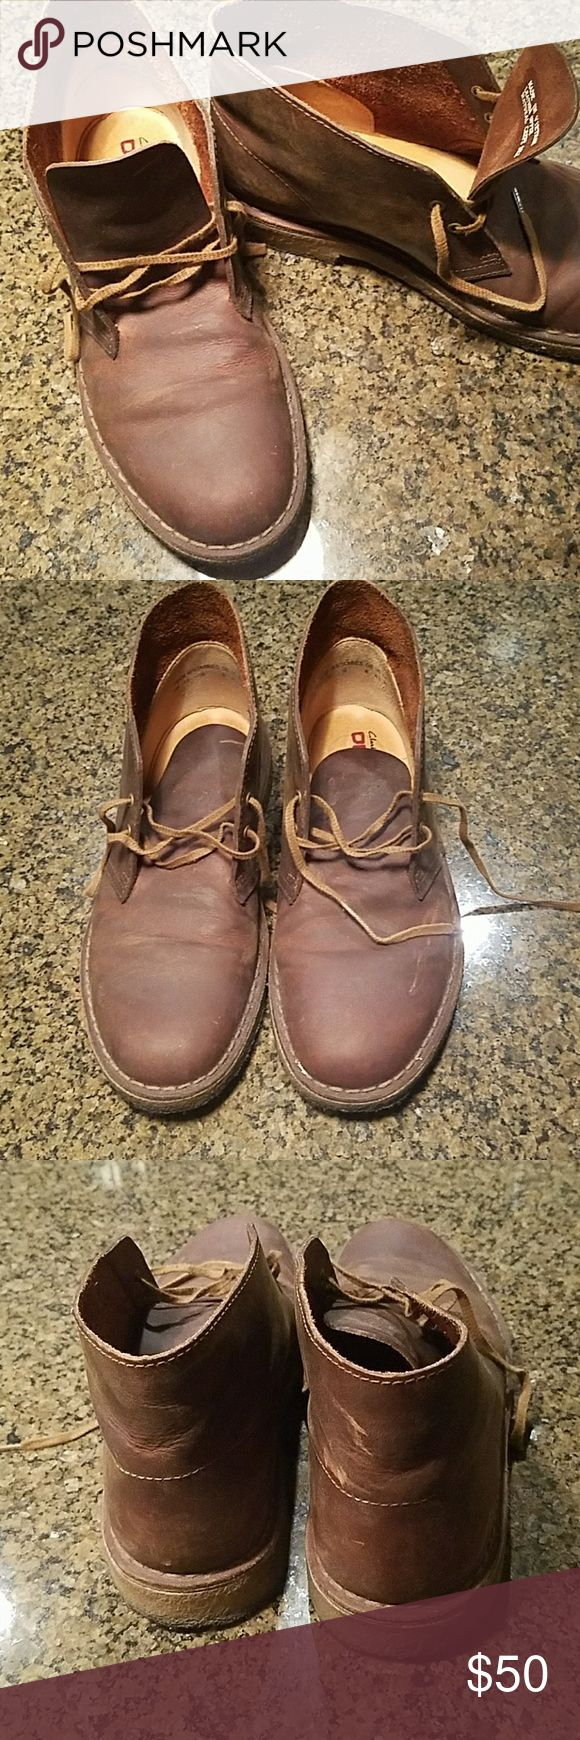 Clarks Originals Men's Desert Boot- Leather Used pair of Clarks Originals Men's Desert Boots in beeswax leather in good condition. Clarks Shoes Chukka Boots